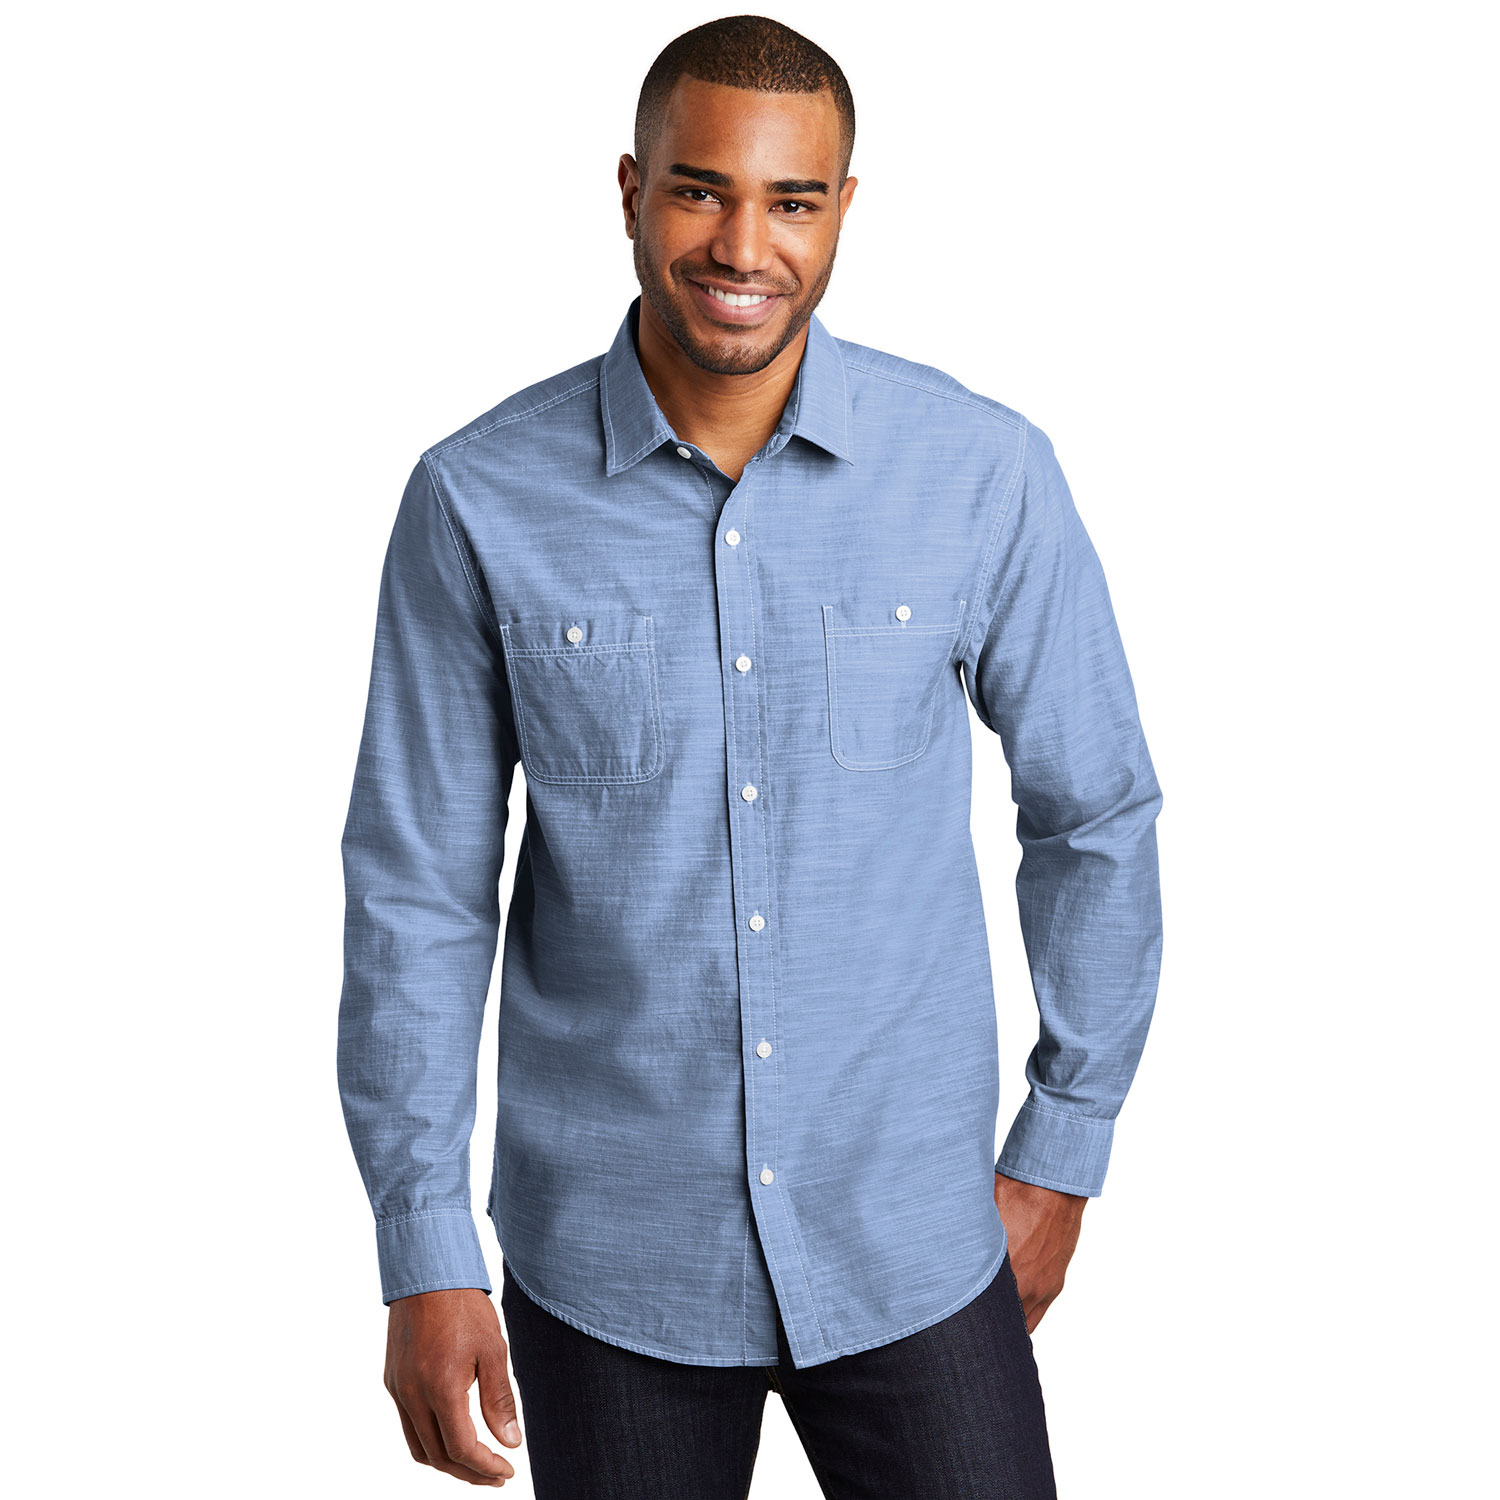 Chefwear Men's Long Sleeve Blue Chambray Kitchen Shirt, Chef Wear Style CW1350